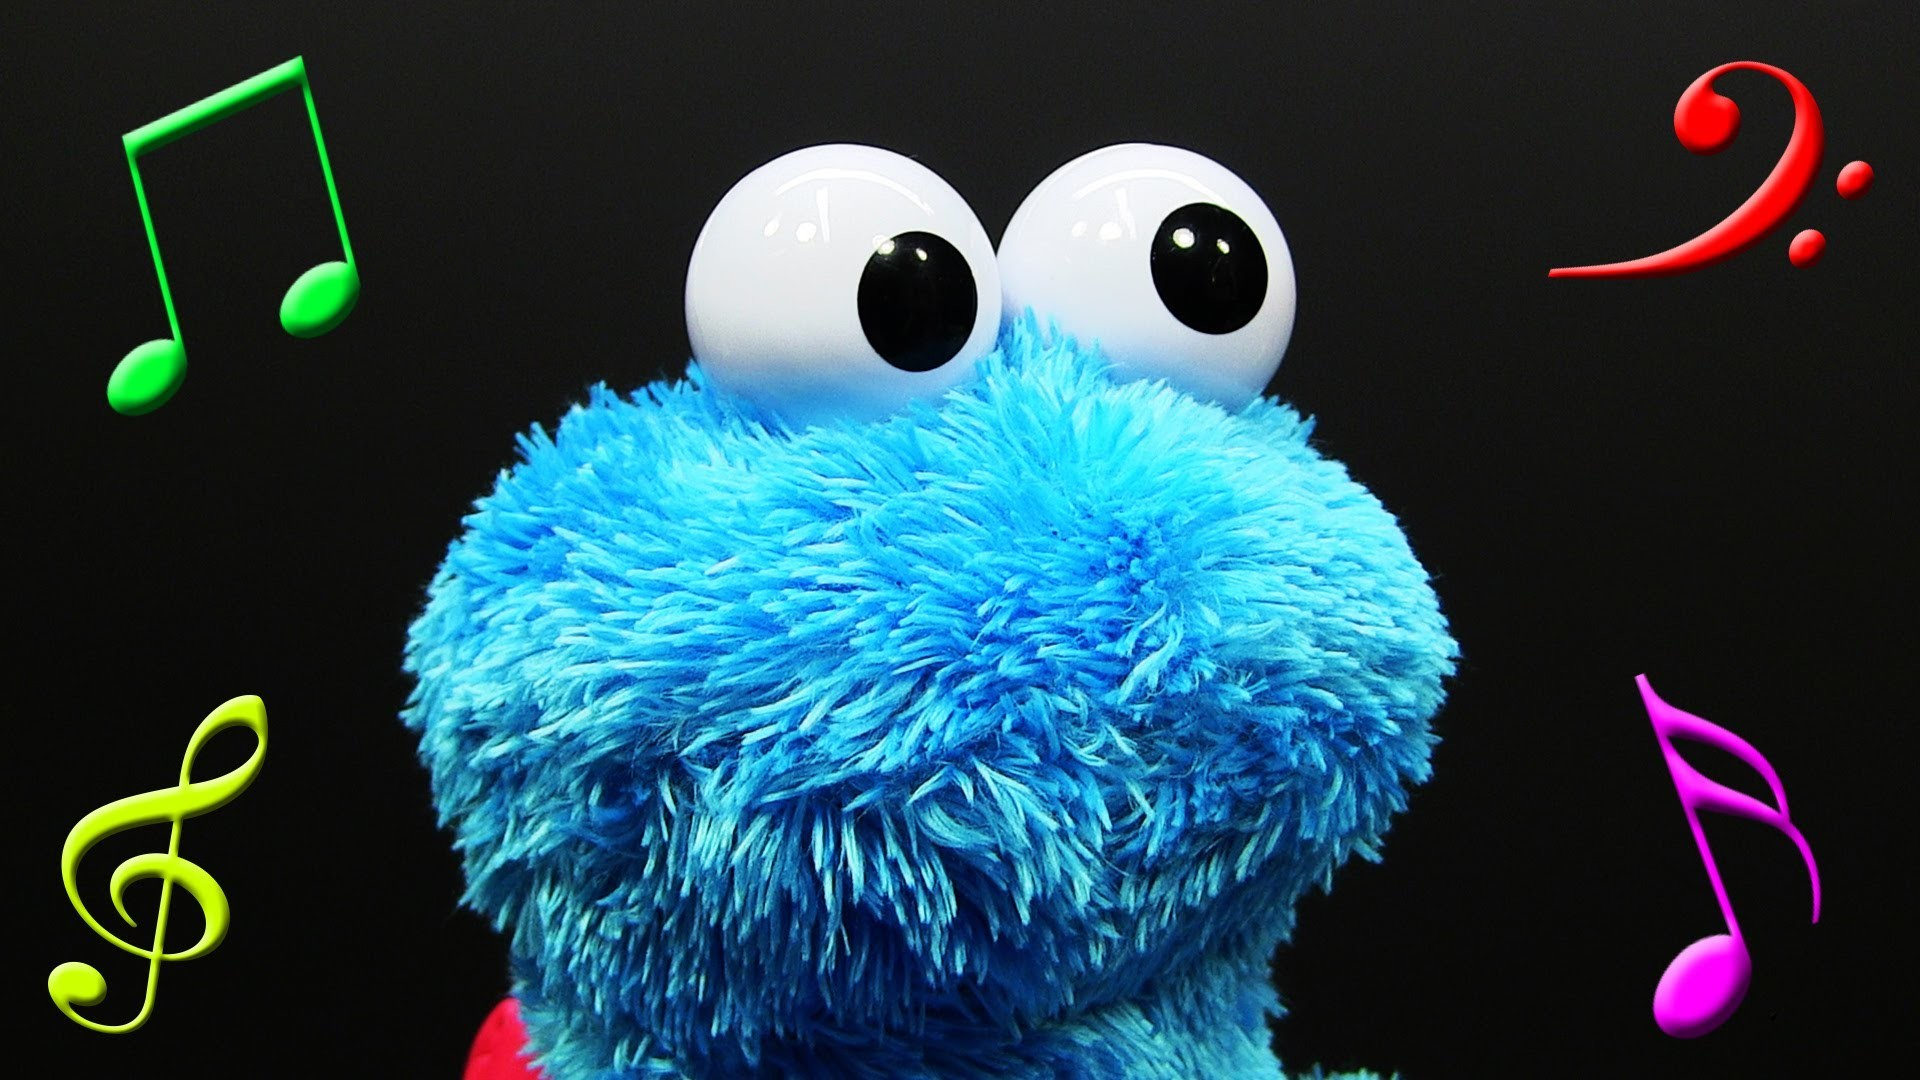 High Resolution Cookie Monster Music Wallpaper Hd 1080p Full Size .